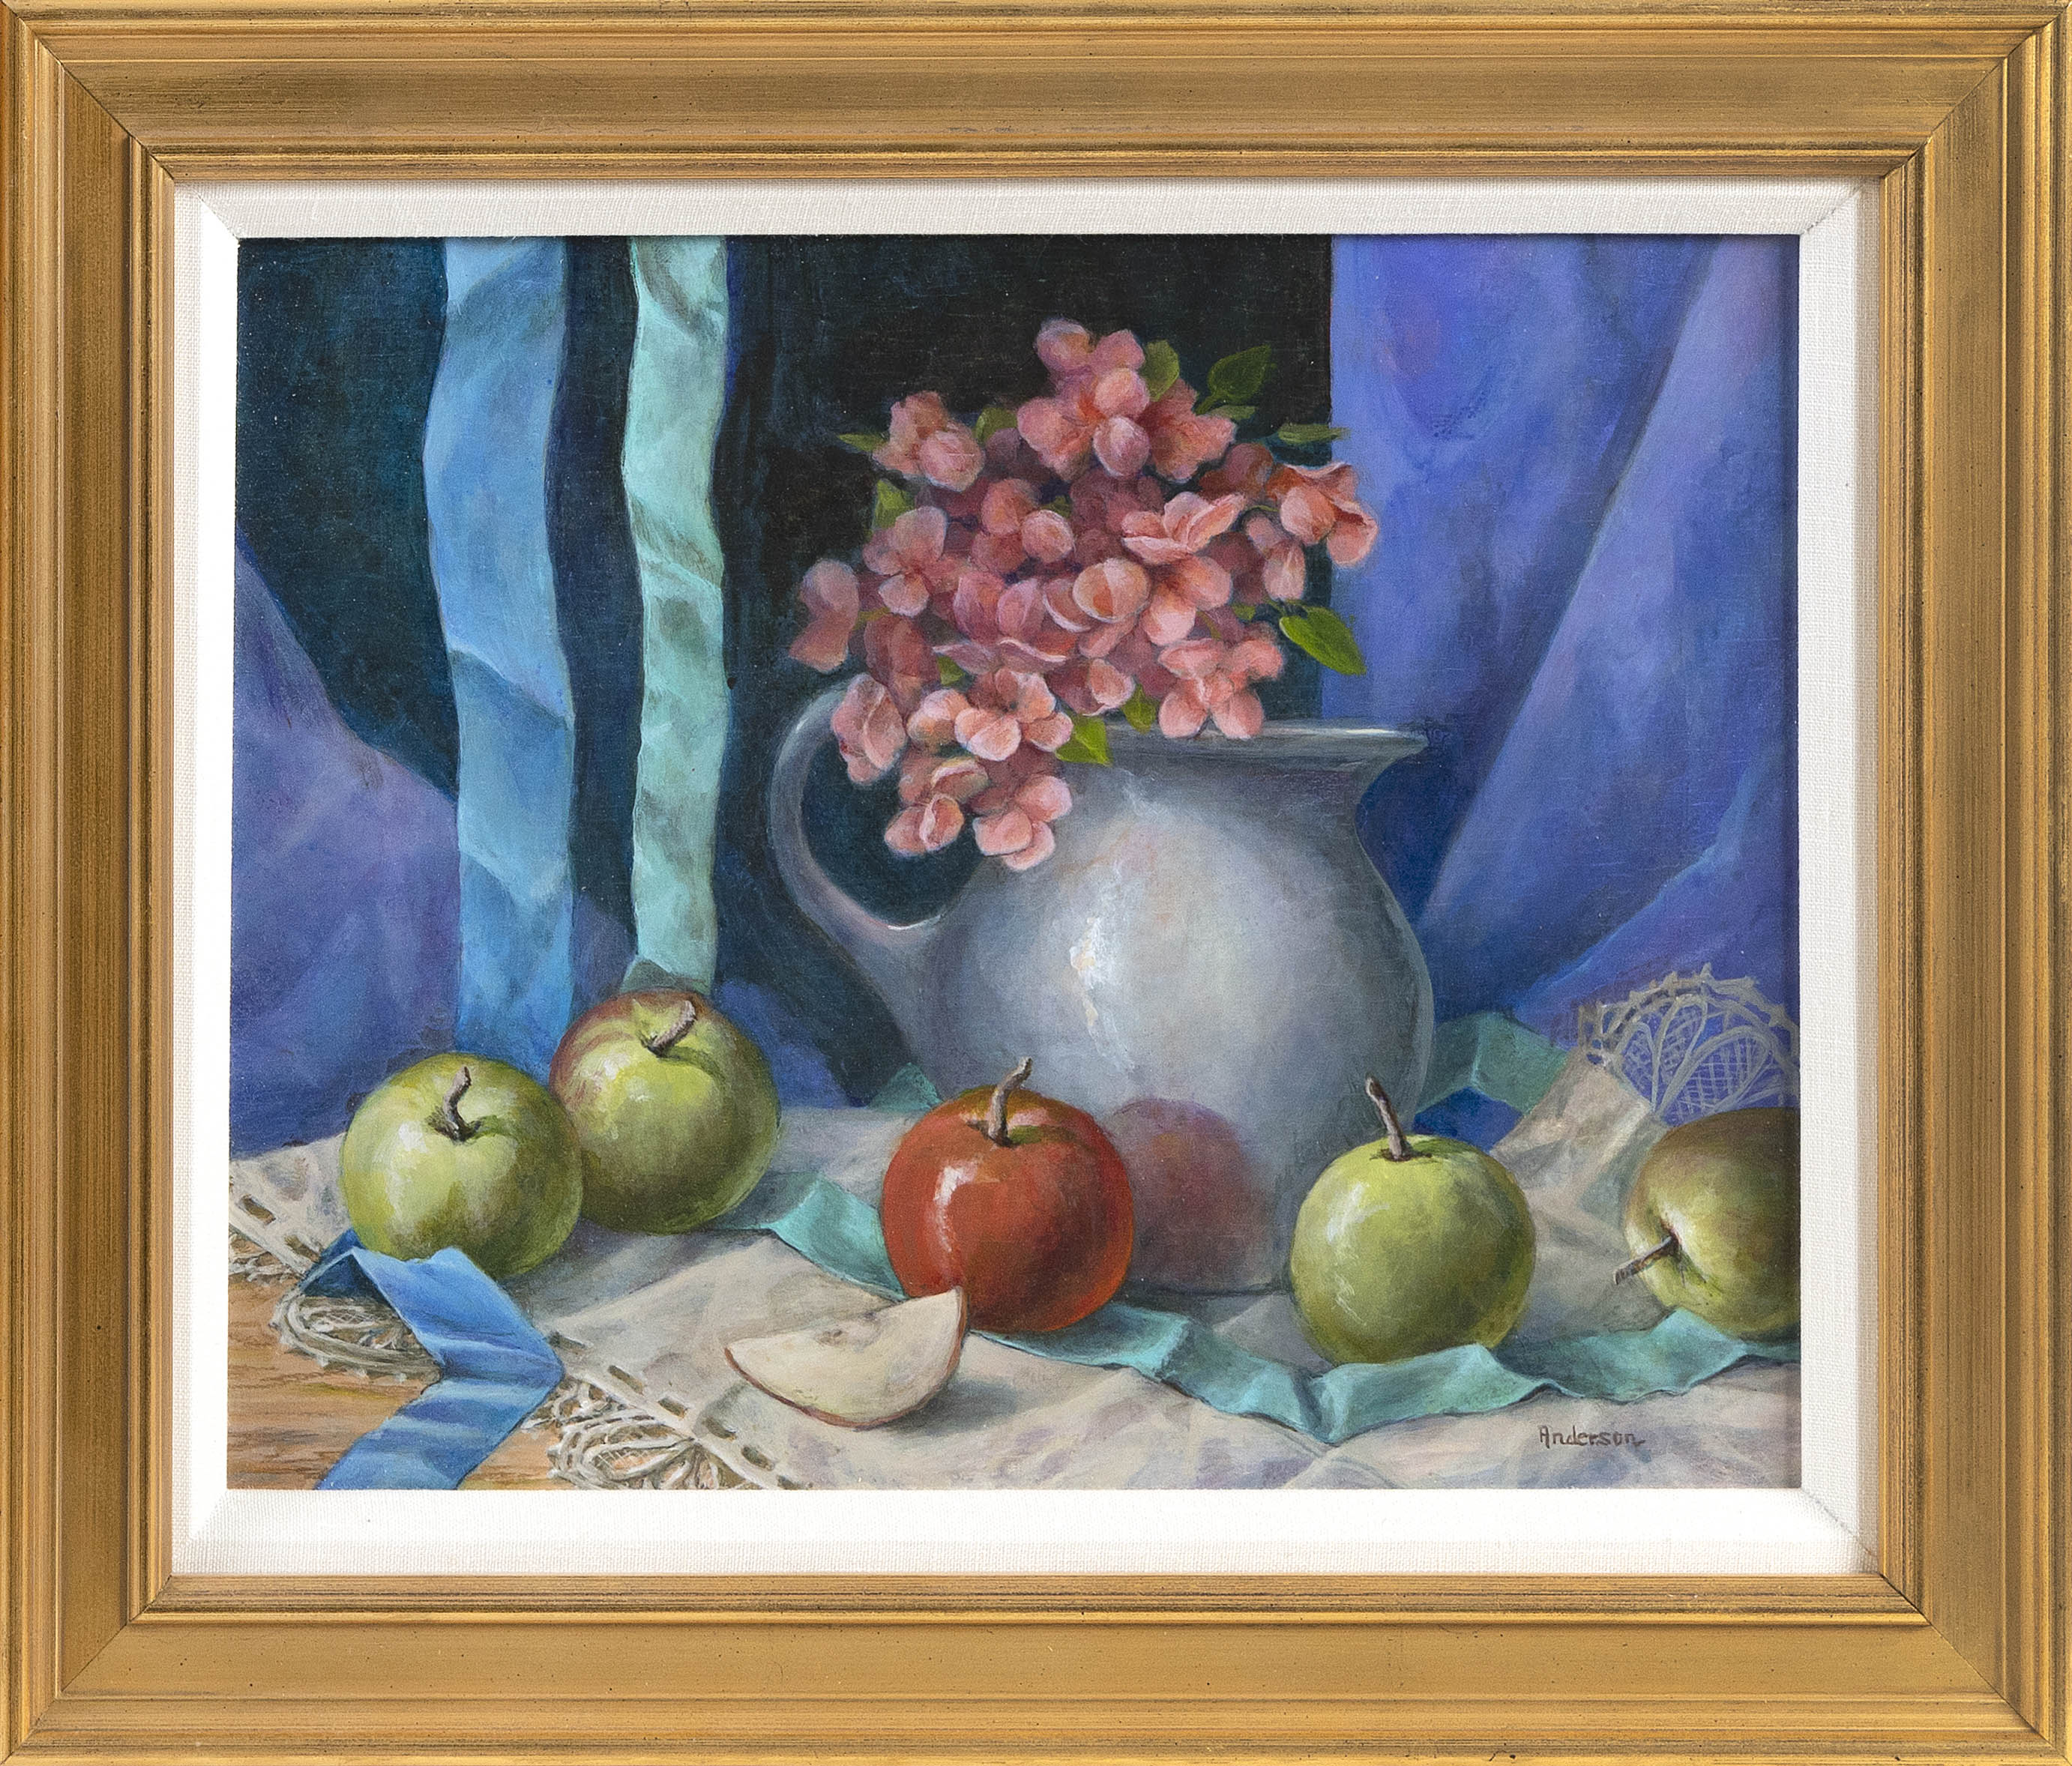 ANNE ANDERSON (Connecticut, Contemporary), Still life of apples and flowers in a pitcher., Acrylic on board, 11